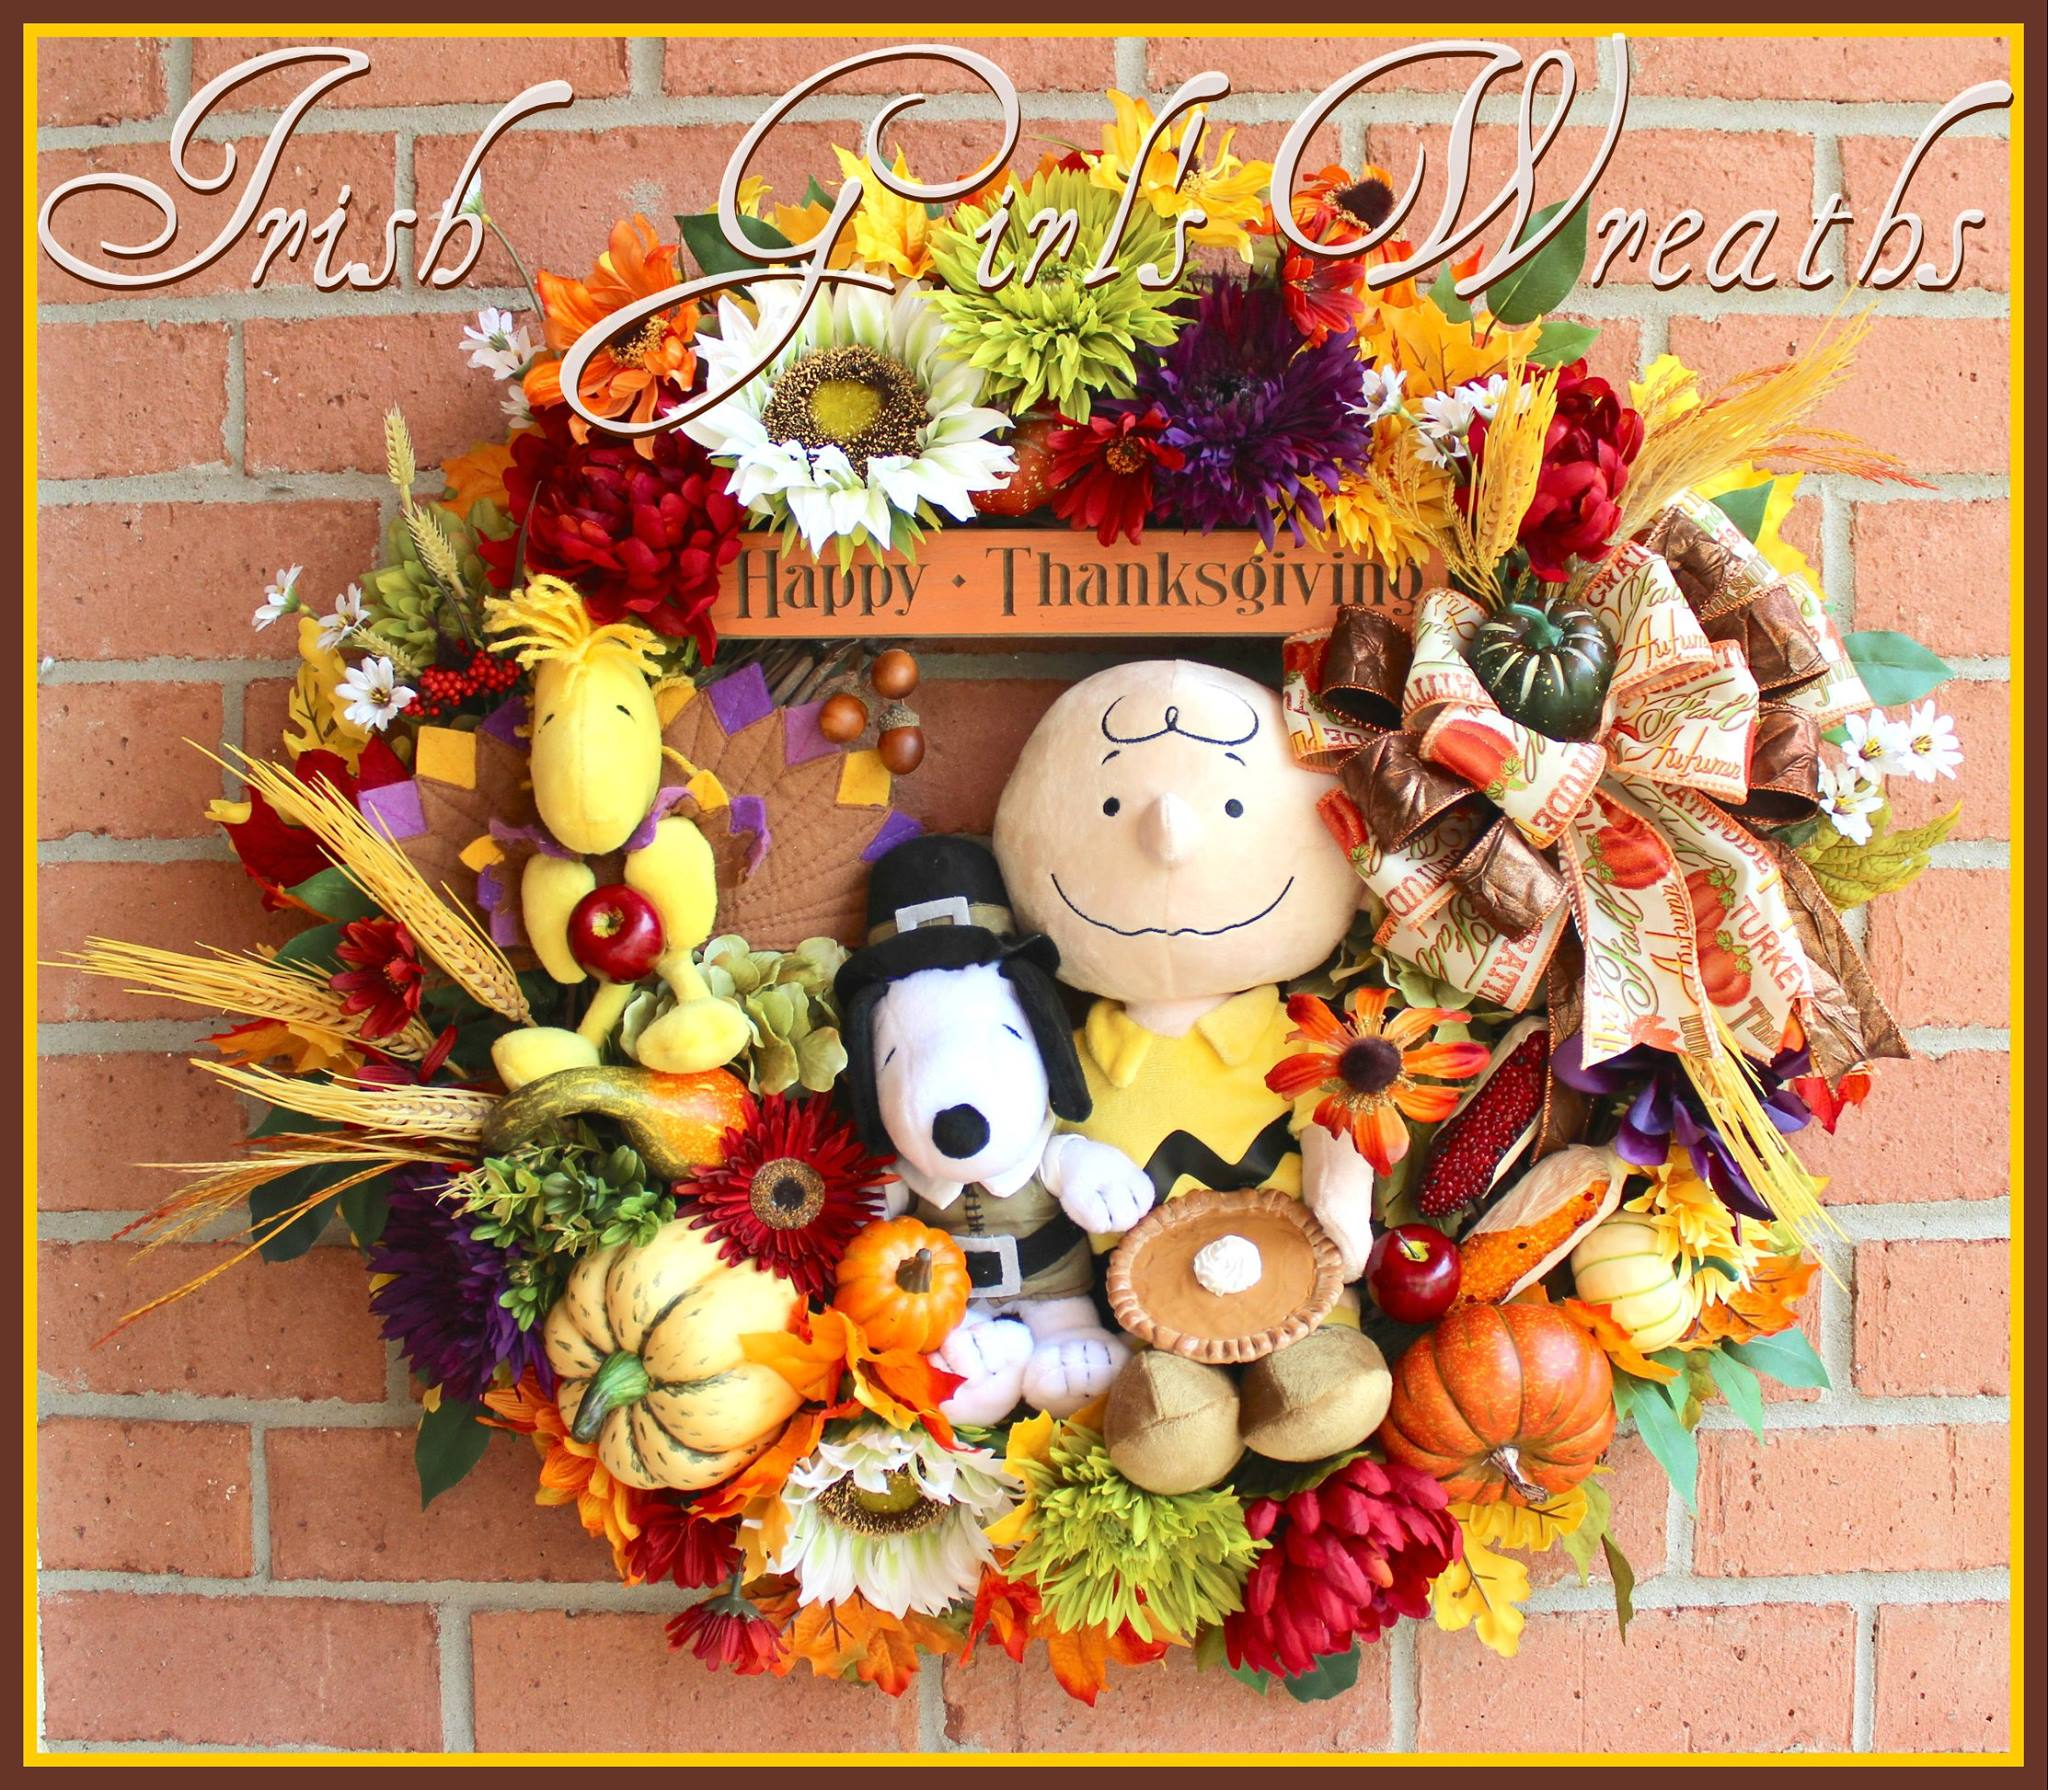 Peanuts Thanksgiving Charlie Brown Wreath for Angela